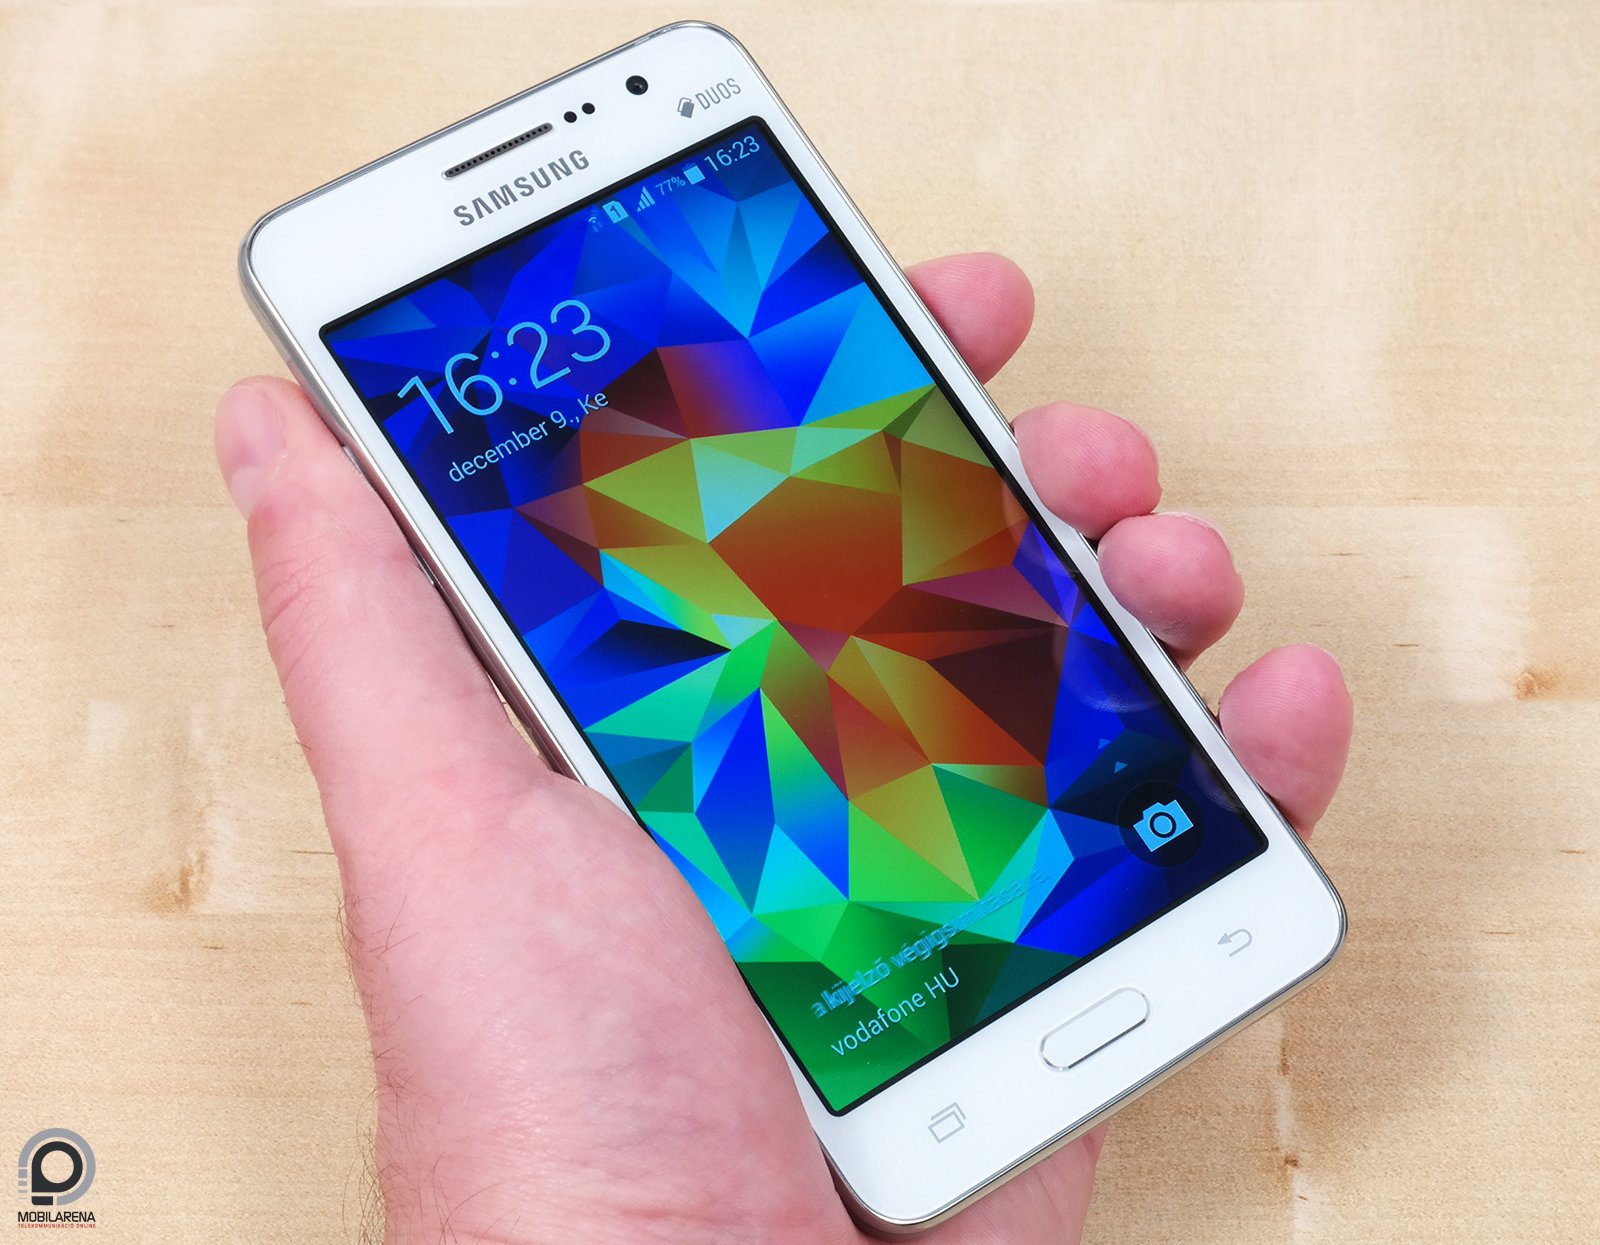 Pin Samsung Galaxy Grand Prime Duos Tv on Pinterest